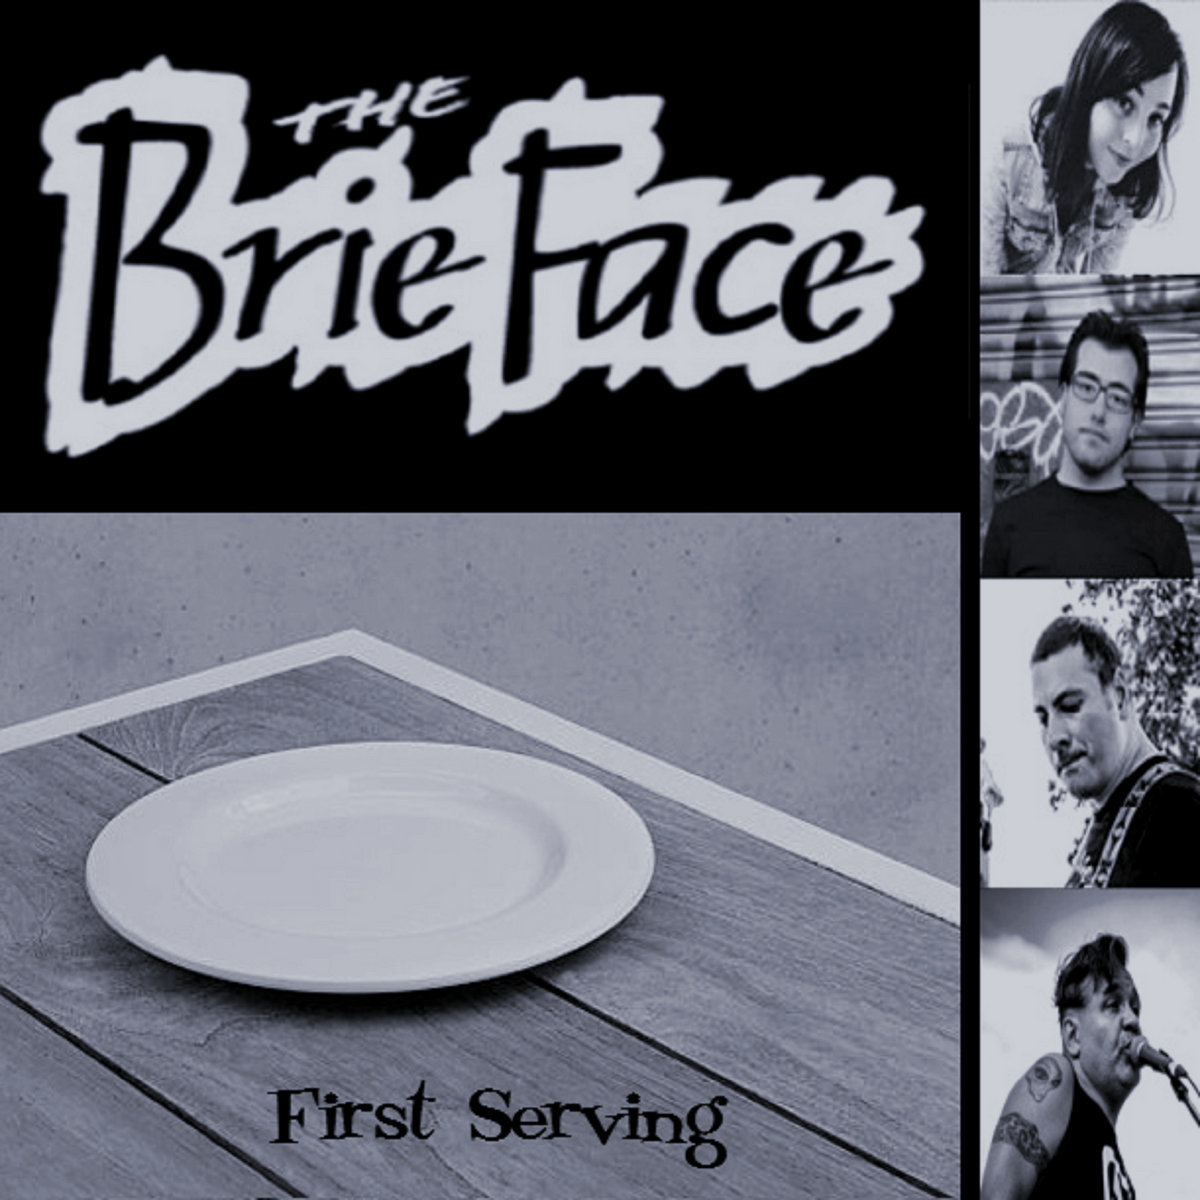 The Brie Face - First Serving